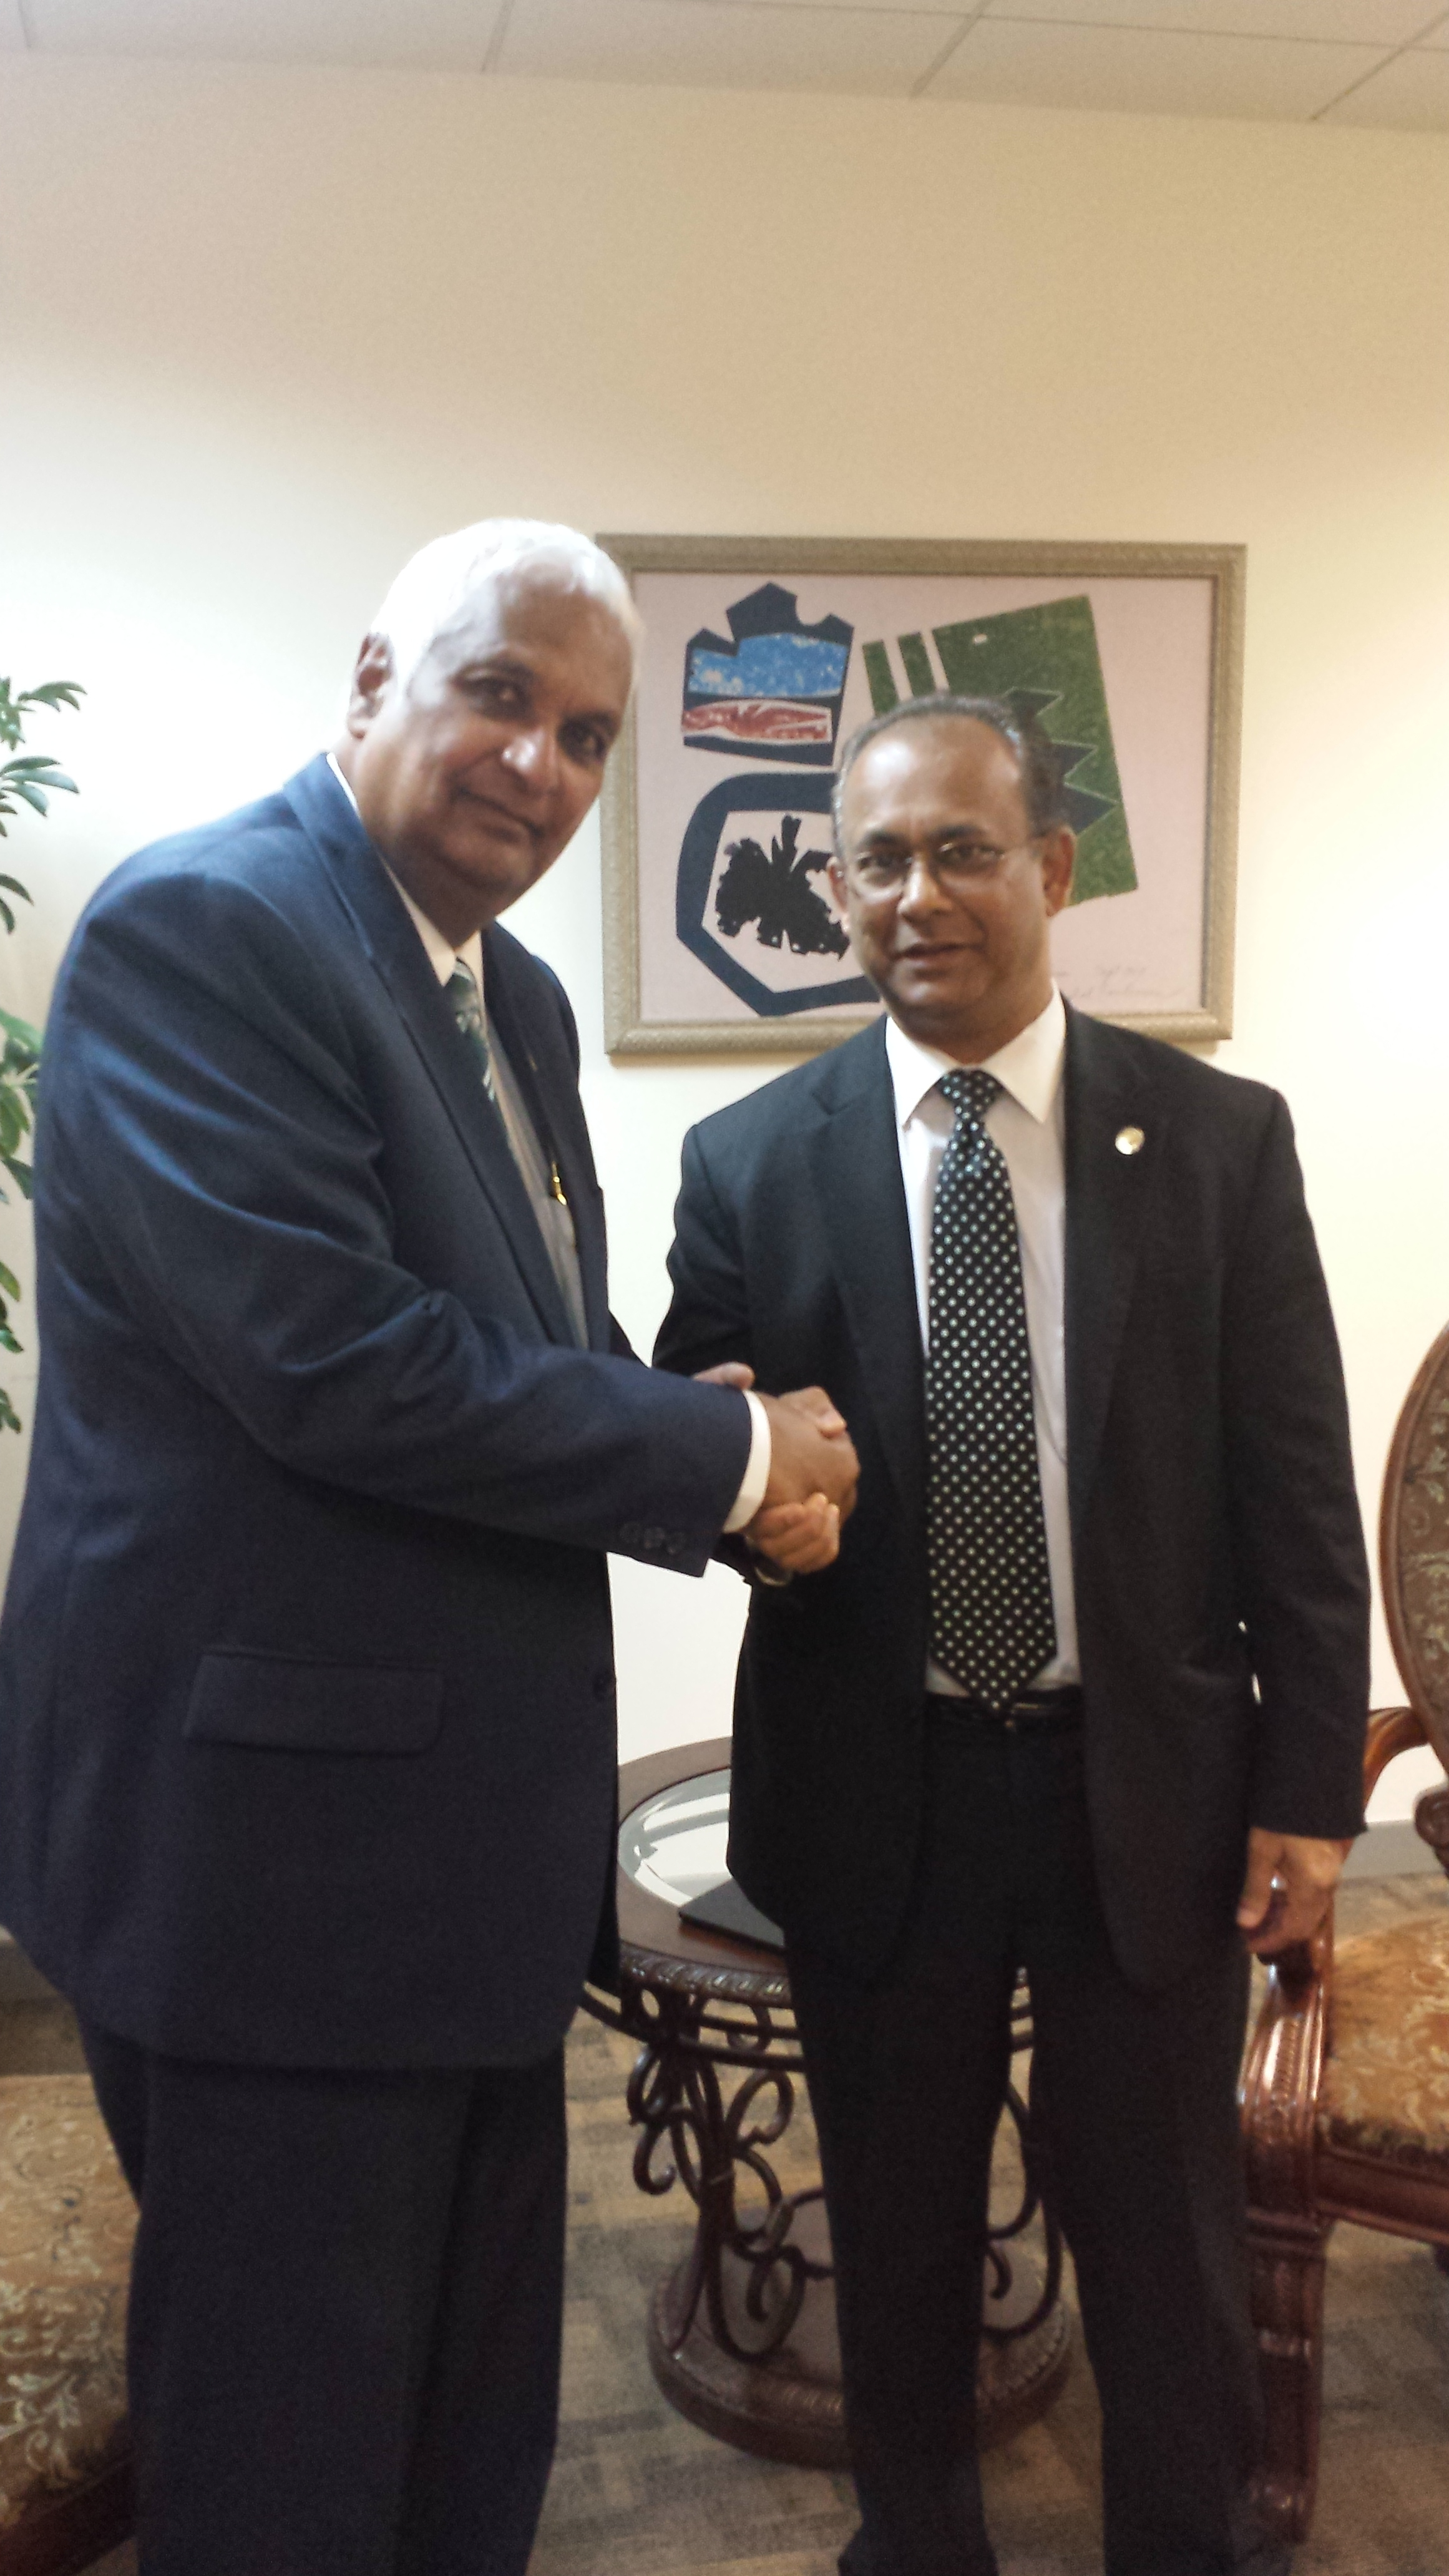 Ambassador Albert Ramdin meets with Hon. Winston Dookeran, Minister of Foreign Affairs of Trinidad and Tobago, during an official visit on February 16-18, 2014